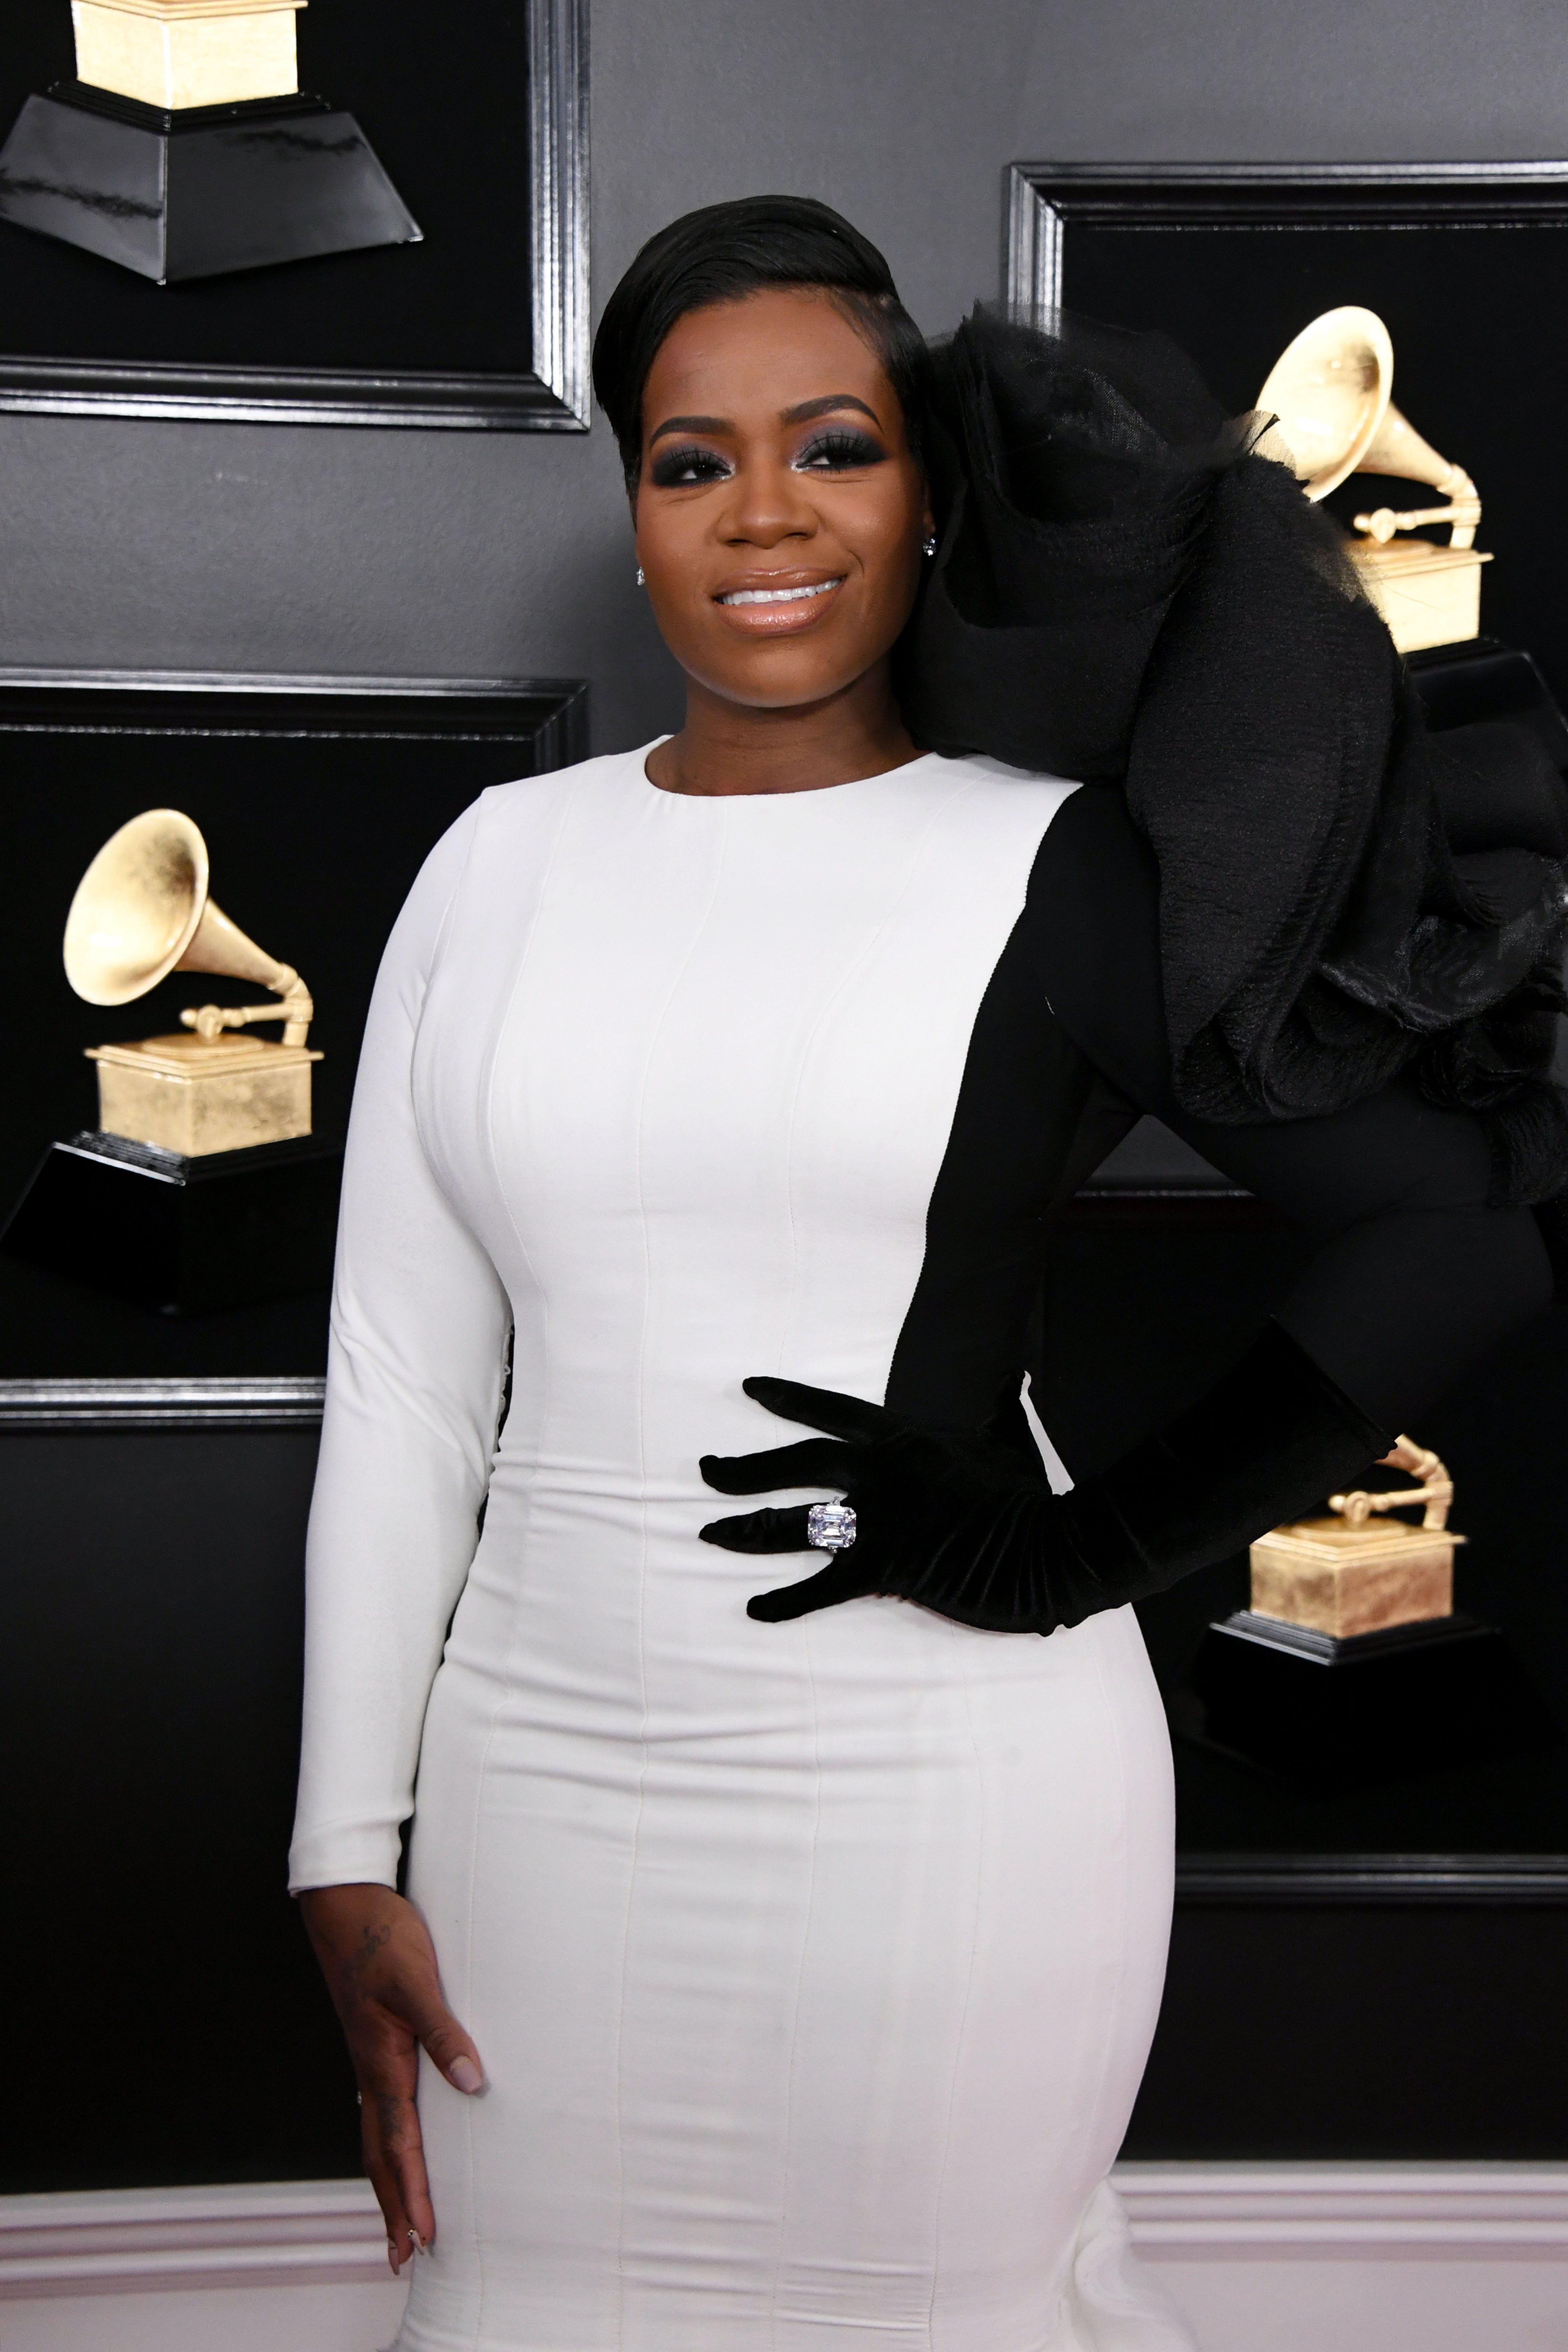 Fantasia Barrino at the 61st Annual Grammy Awards on February 10, 2019 in Los Angeles, California   Photo: Getty Images